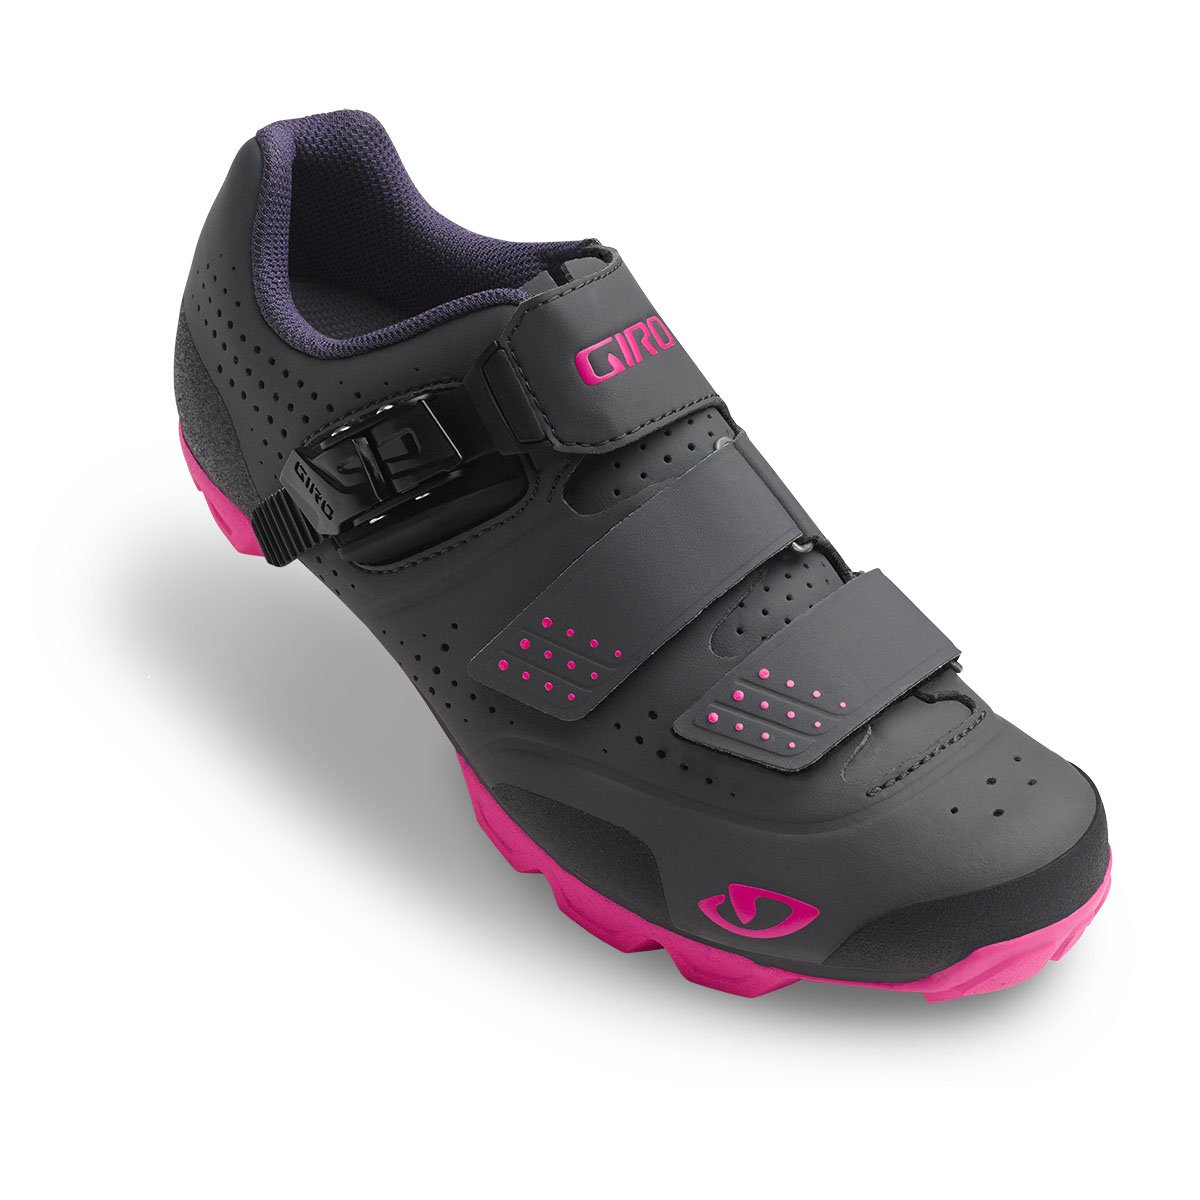 Giro Manta R Cycling Shoes - Women's B01MDKP36W 40.5 M EU|Dark Shadow/Bright Pink